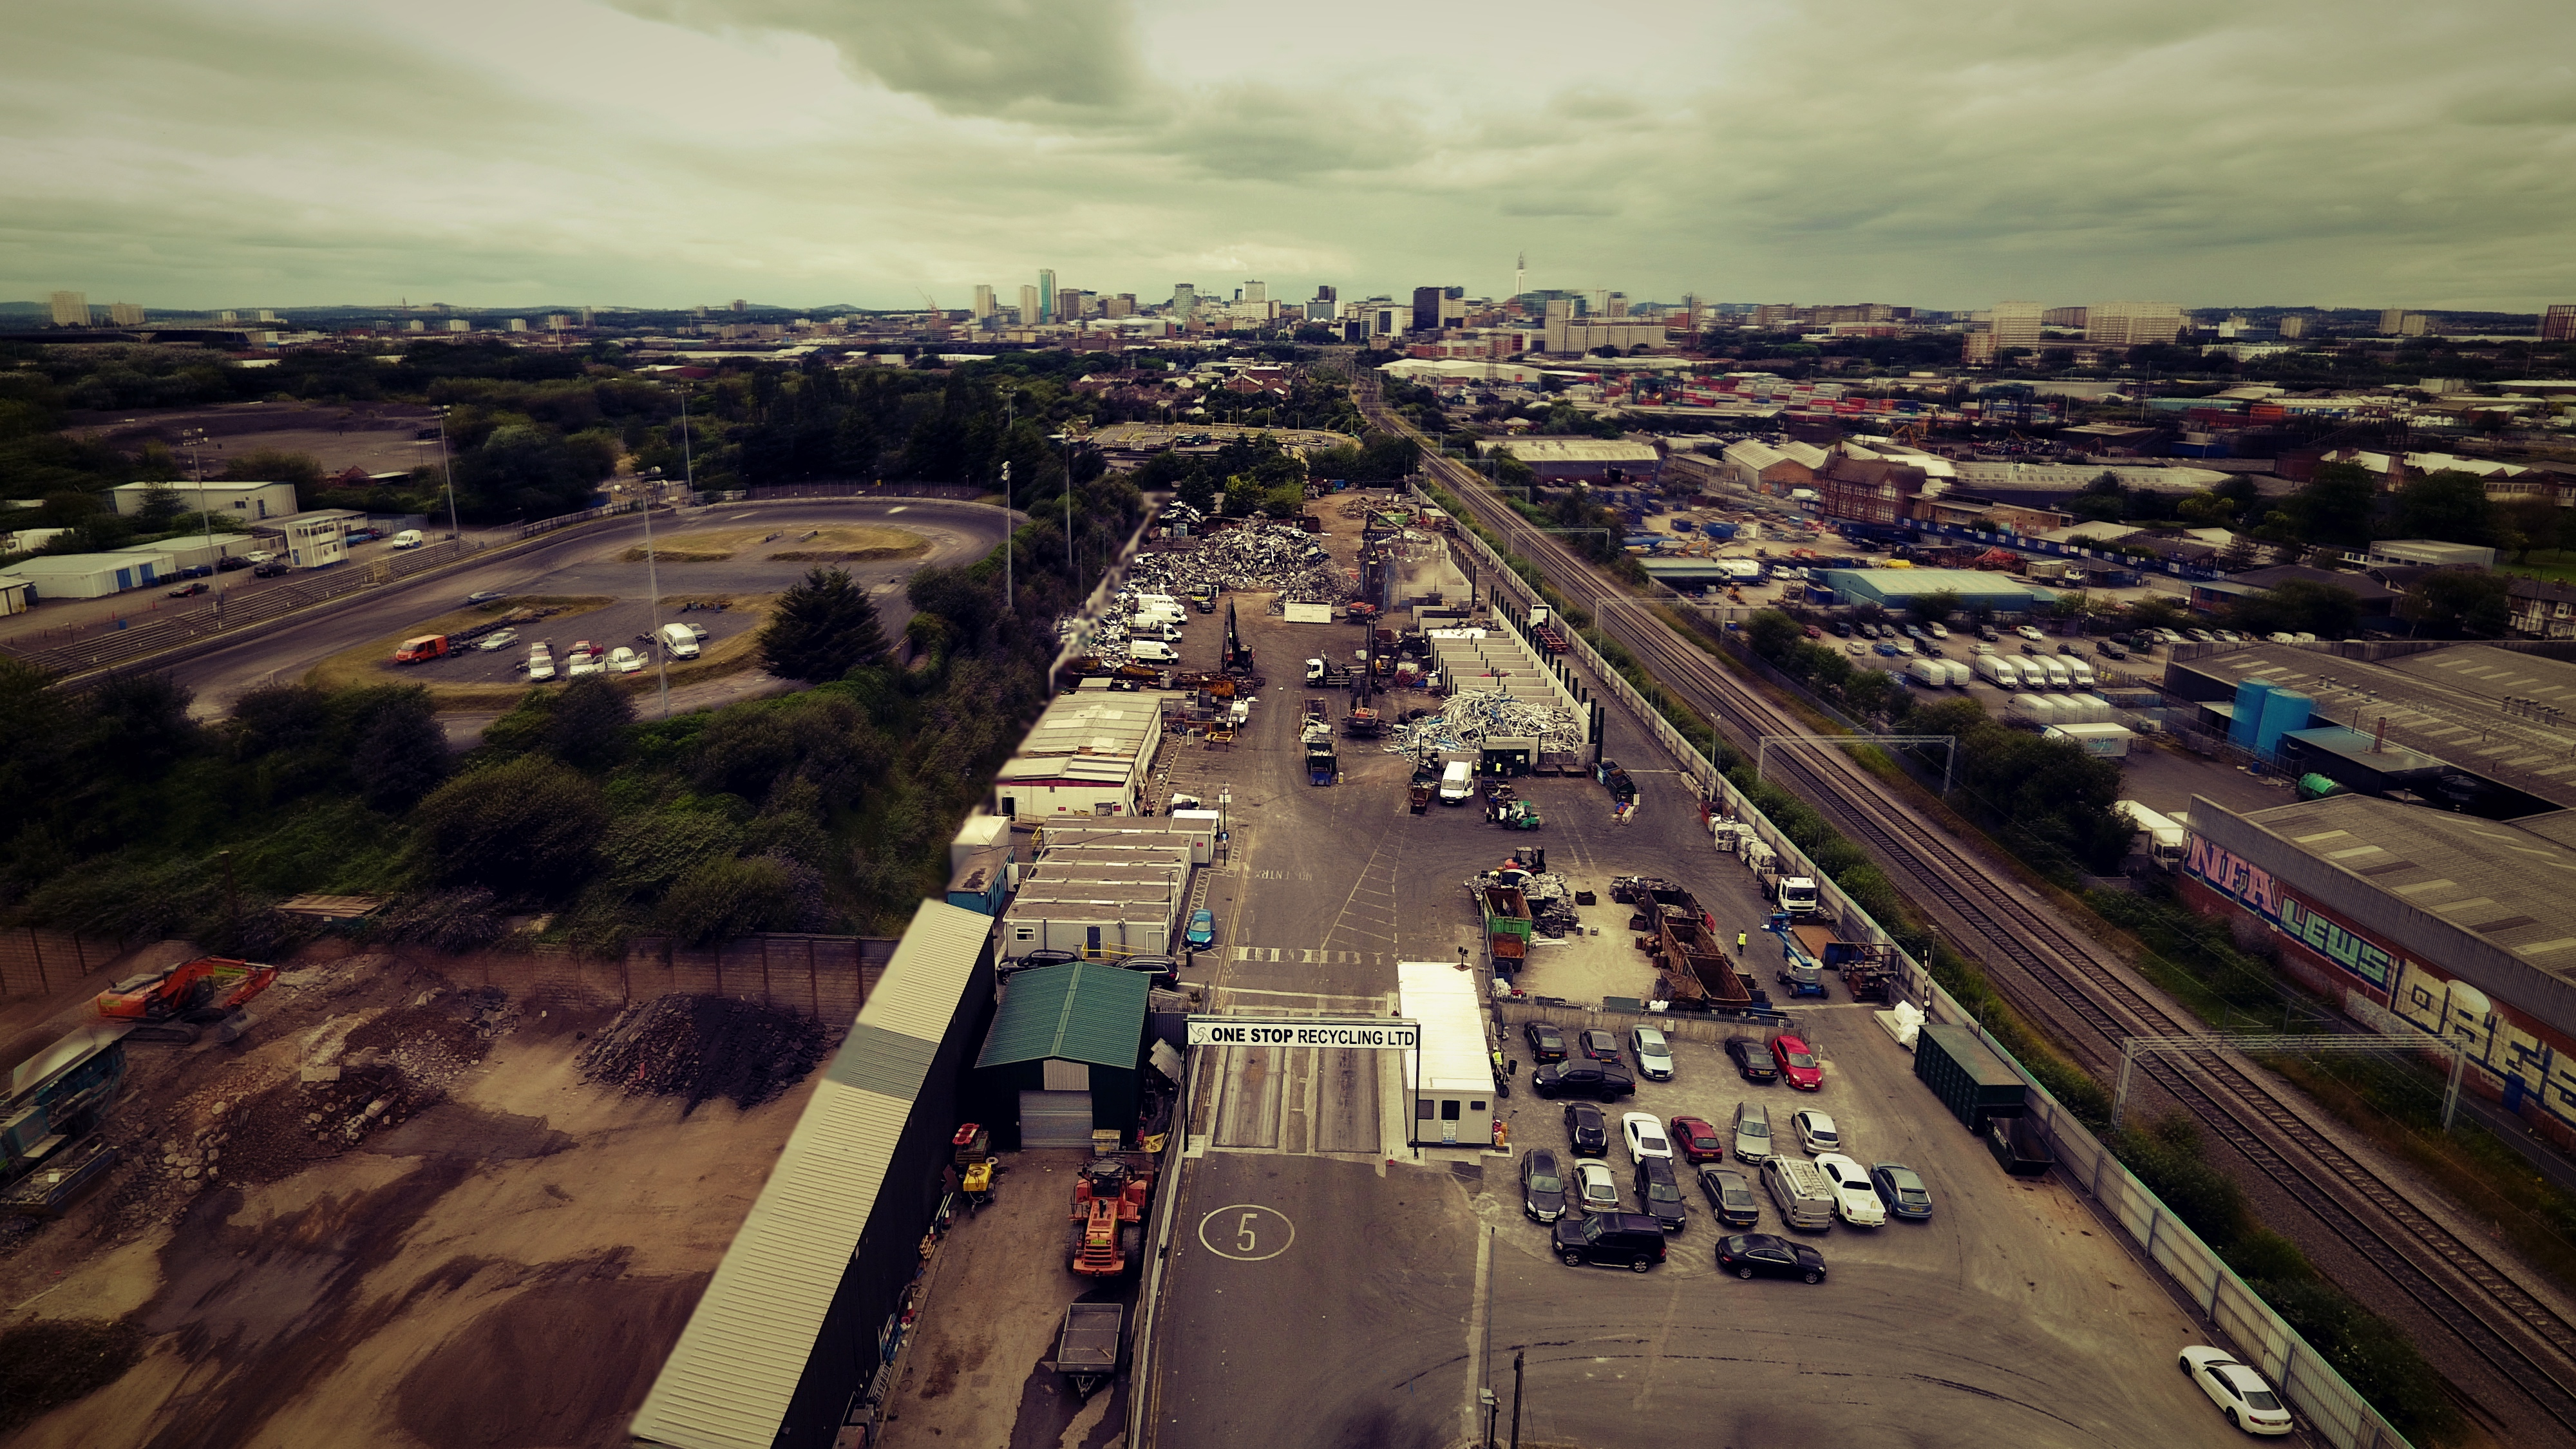 Onestop Recycling Drone Photo